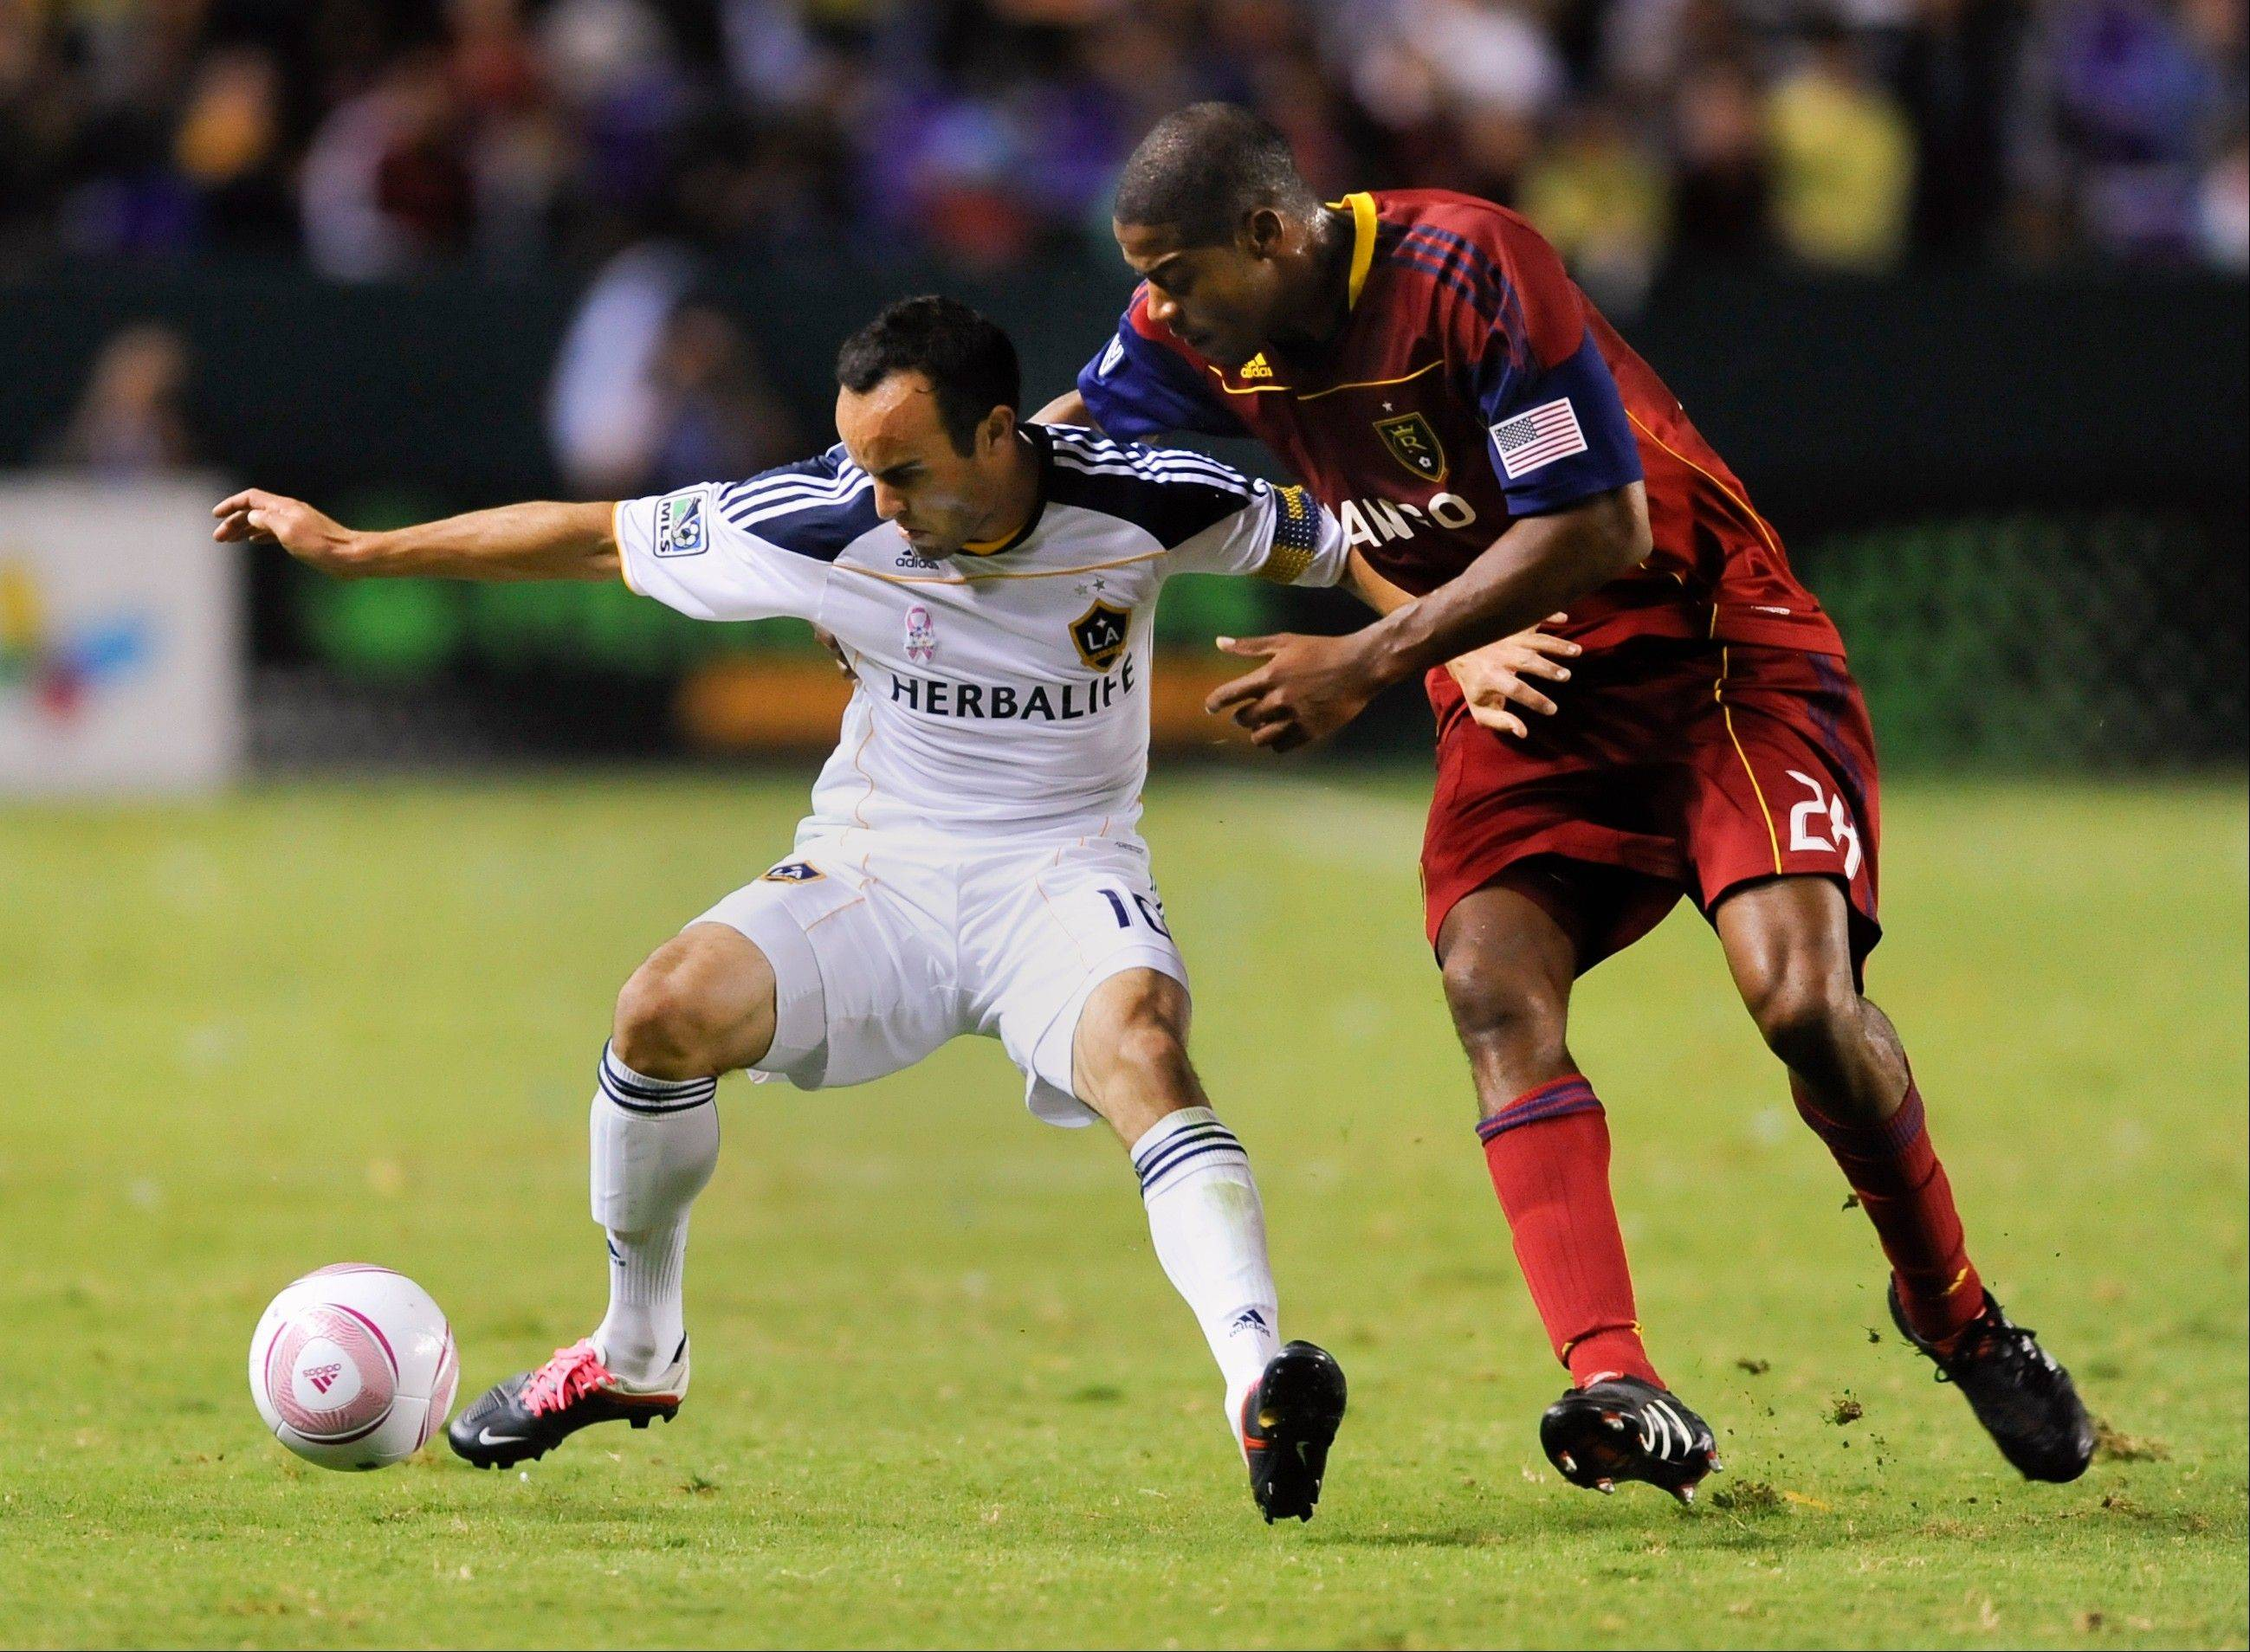 Real Salt Lake defender Chris Schuler, at right trying to control the Galaxy�s Landon Donovan, has helped anchor the back line for RSL this season.